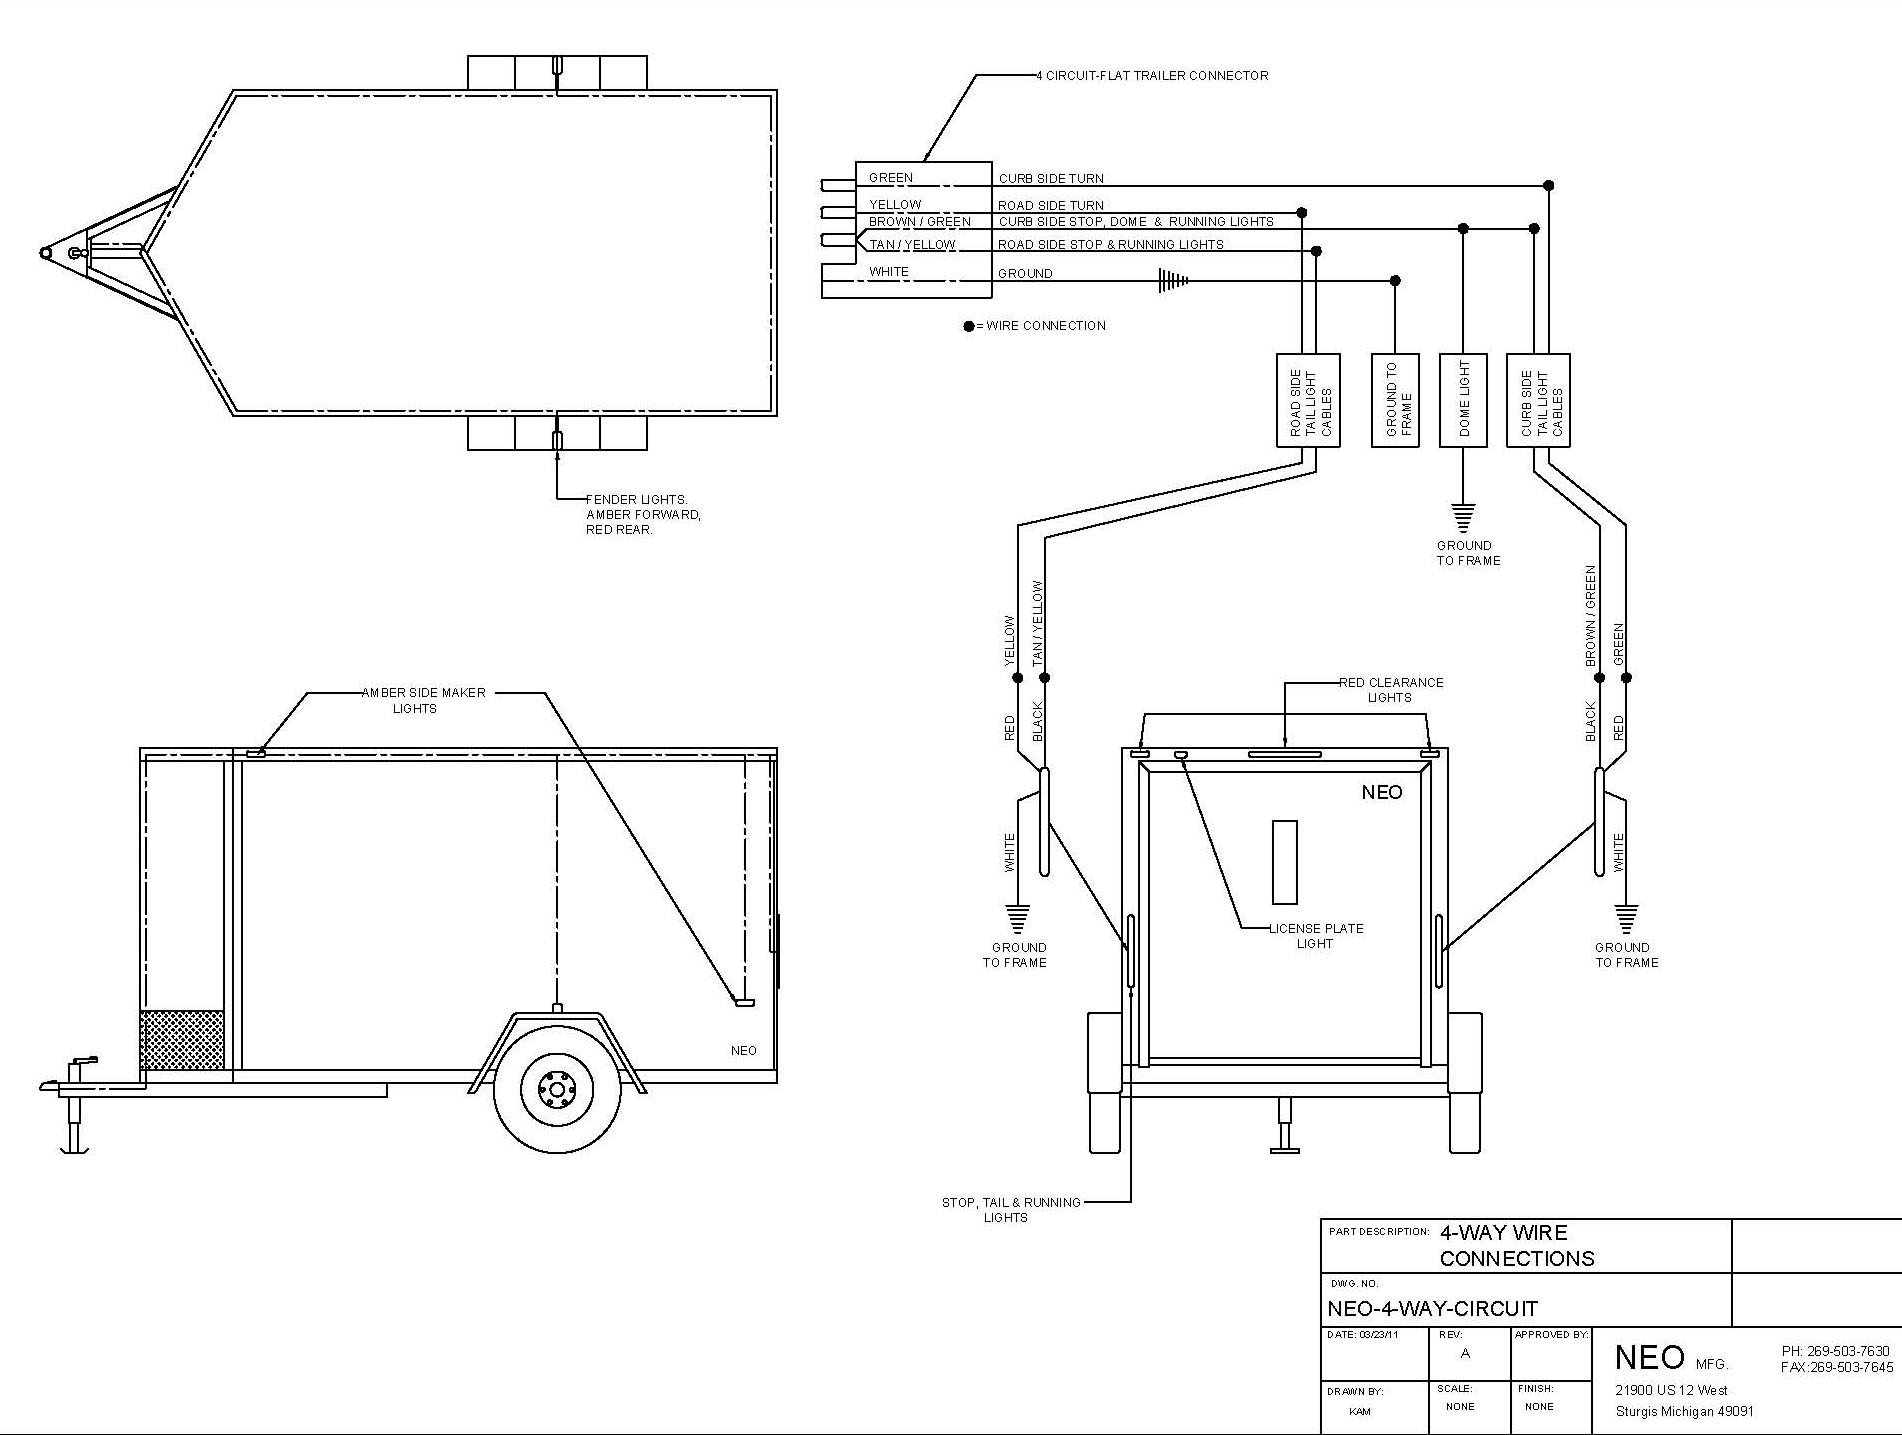 wire4 trailer wiring diagram for 4 way, 5 way, 6 way and 7 way circuits,7 Pin Rv Plug Wiring Diagram